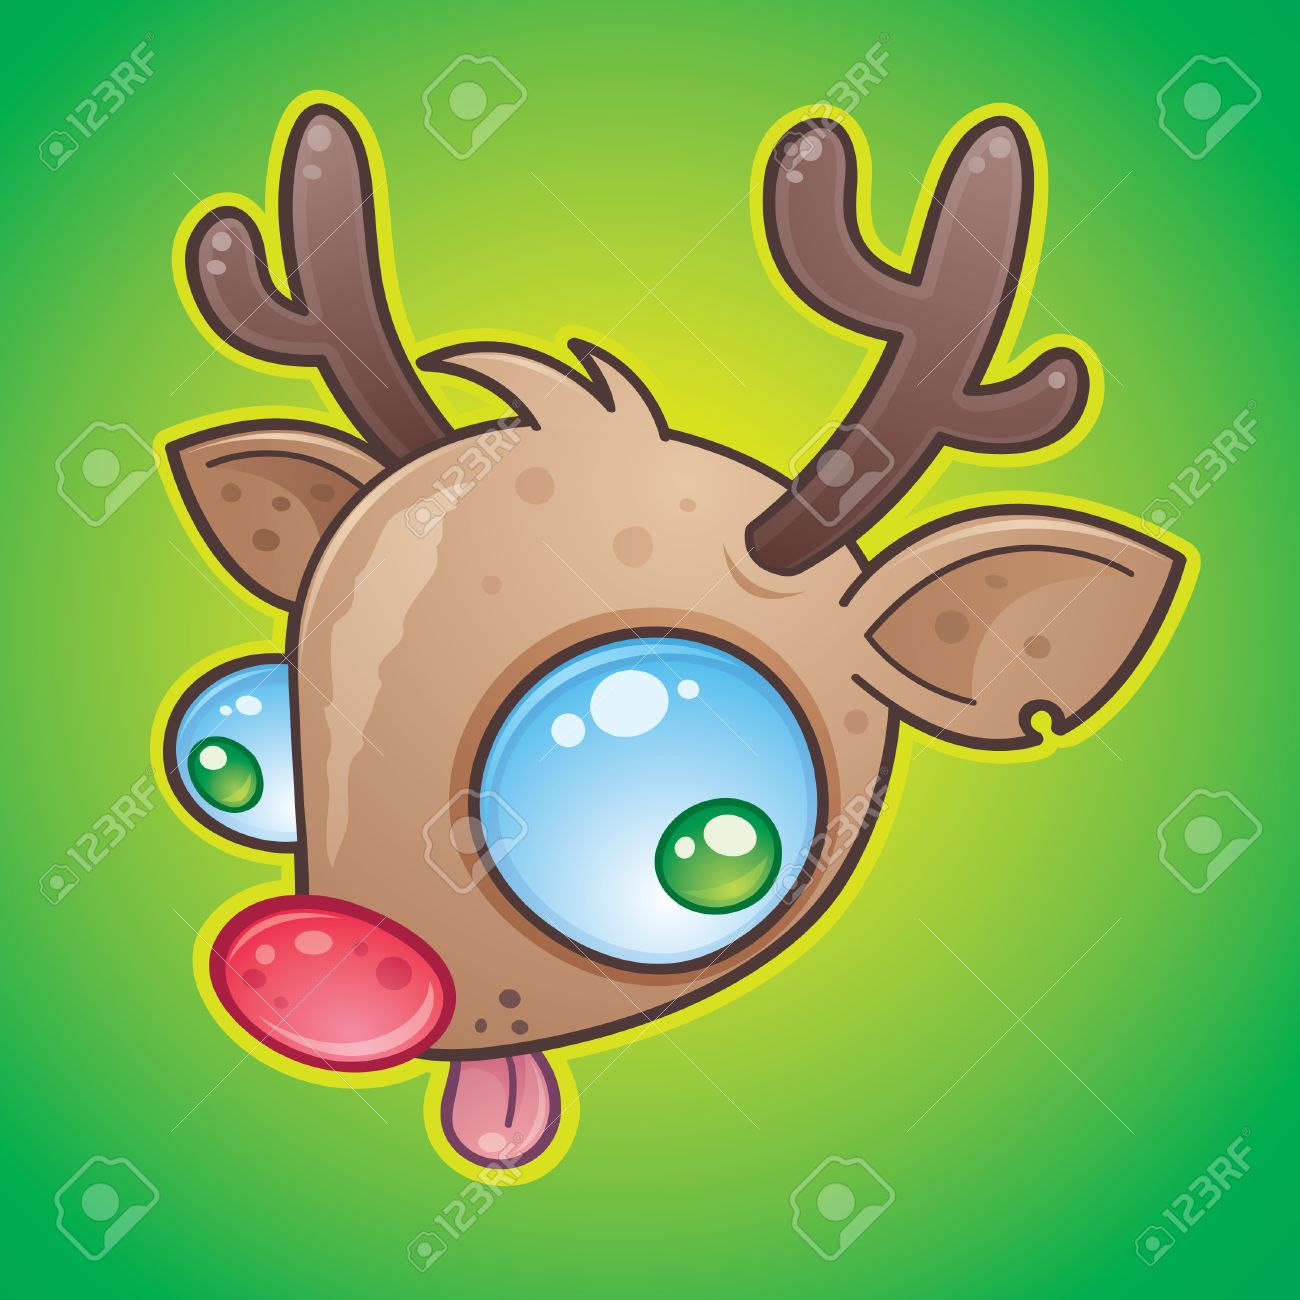 Wacky Rudolph The Red Nosed Reindeer face with bulging eyes sticking out his tongue. drawn in a humorous cartoon style. Stock Vector - 4743871